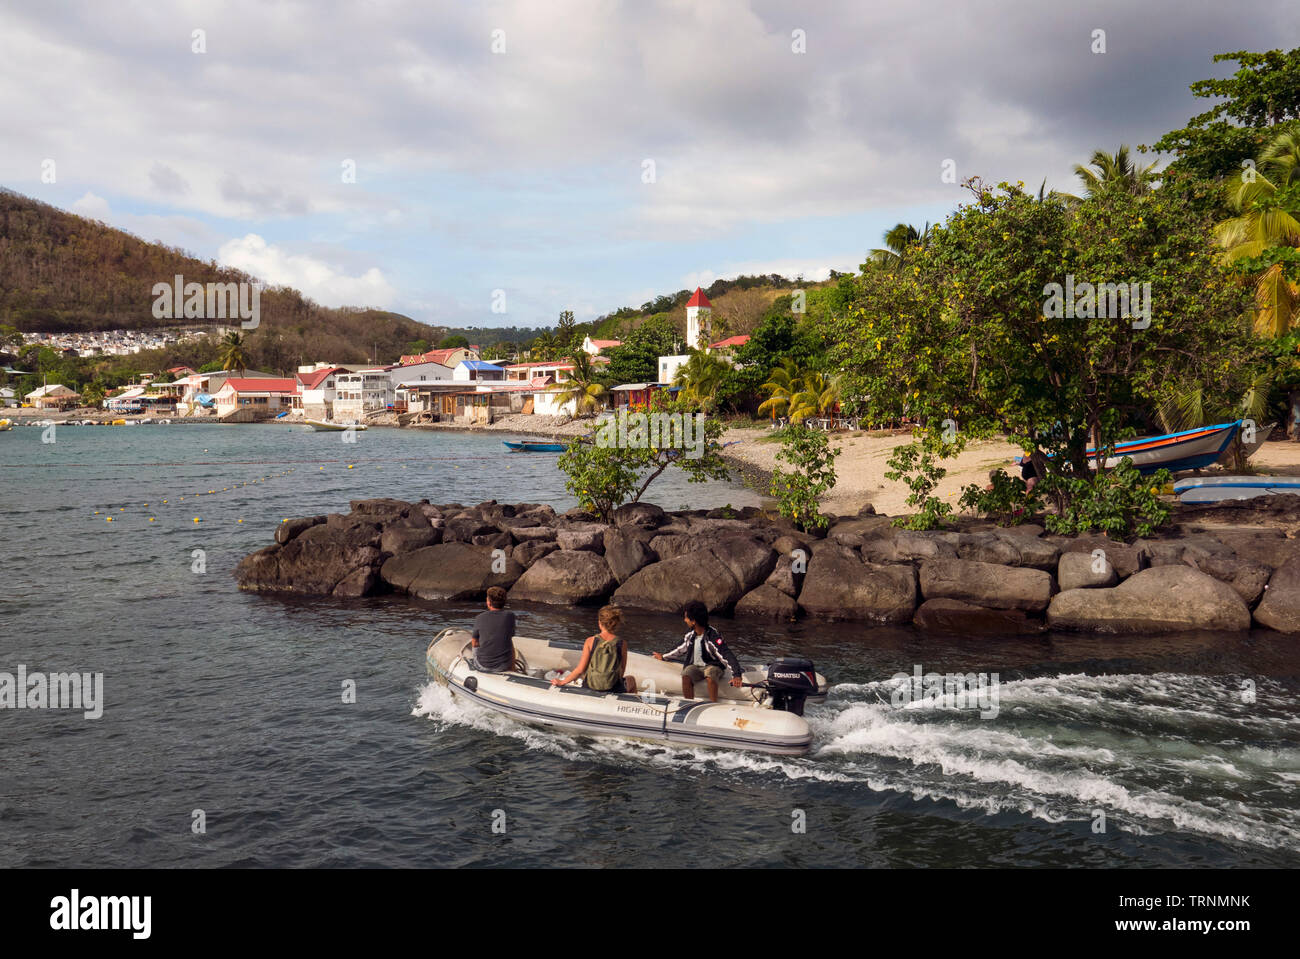 """Pretty Bay and town of Deshiaes in Basse Terre  Guadeloupe. Location for """"Death in Paradise"""" TV series Stock Photo"""